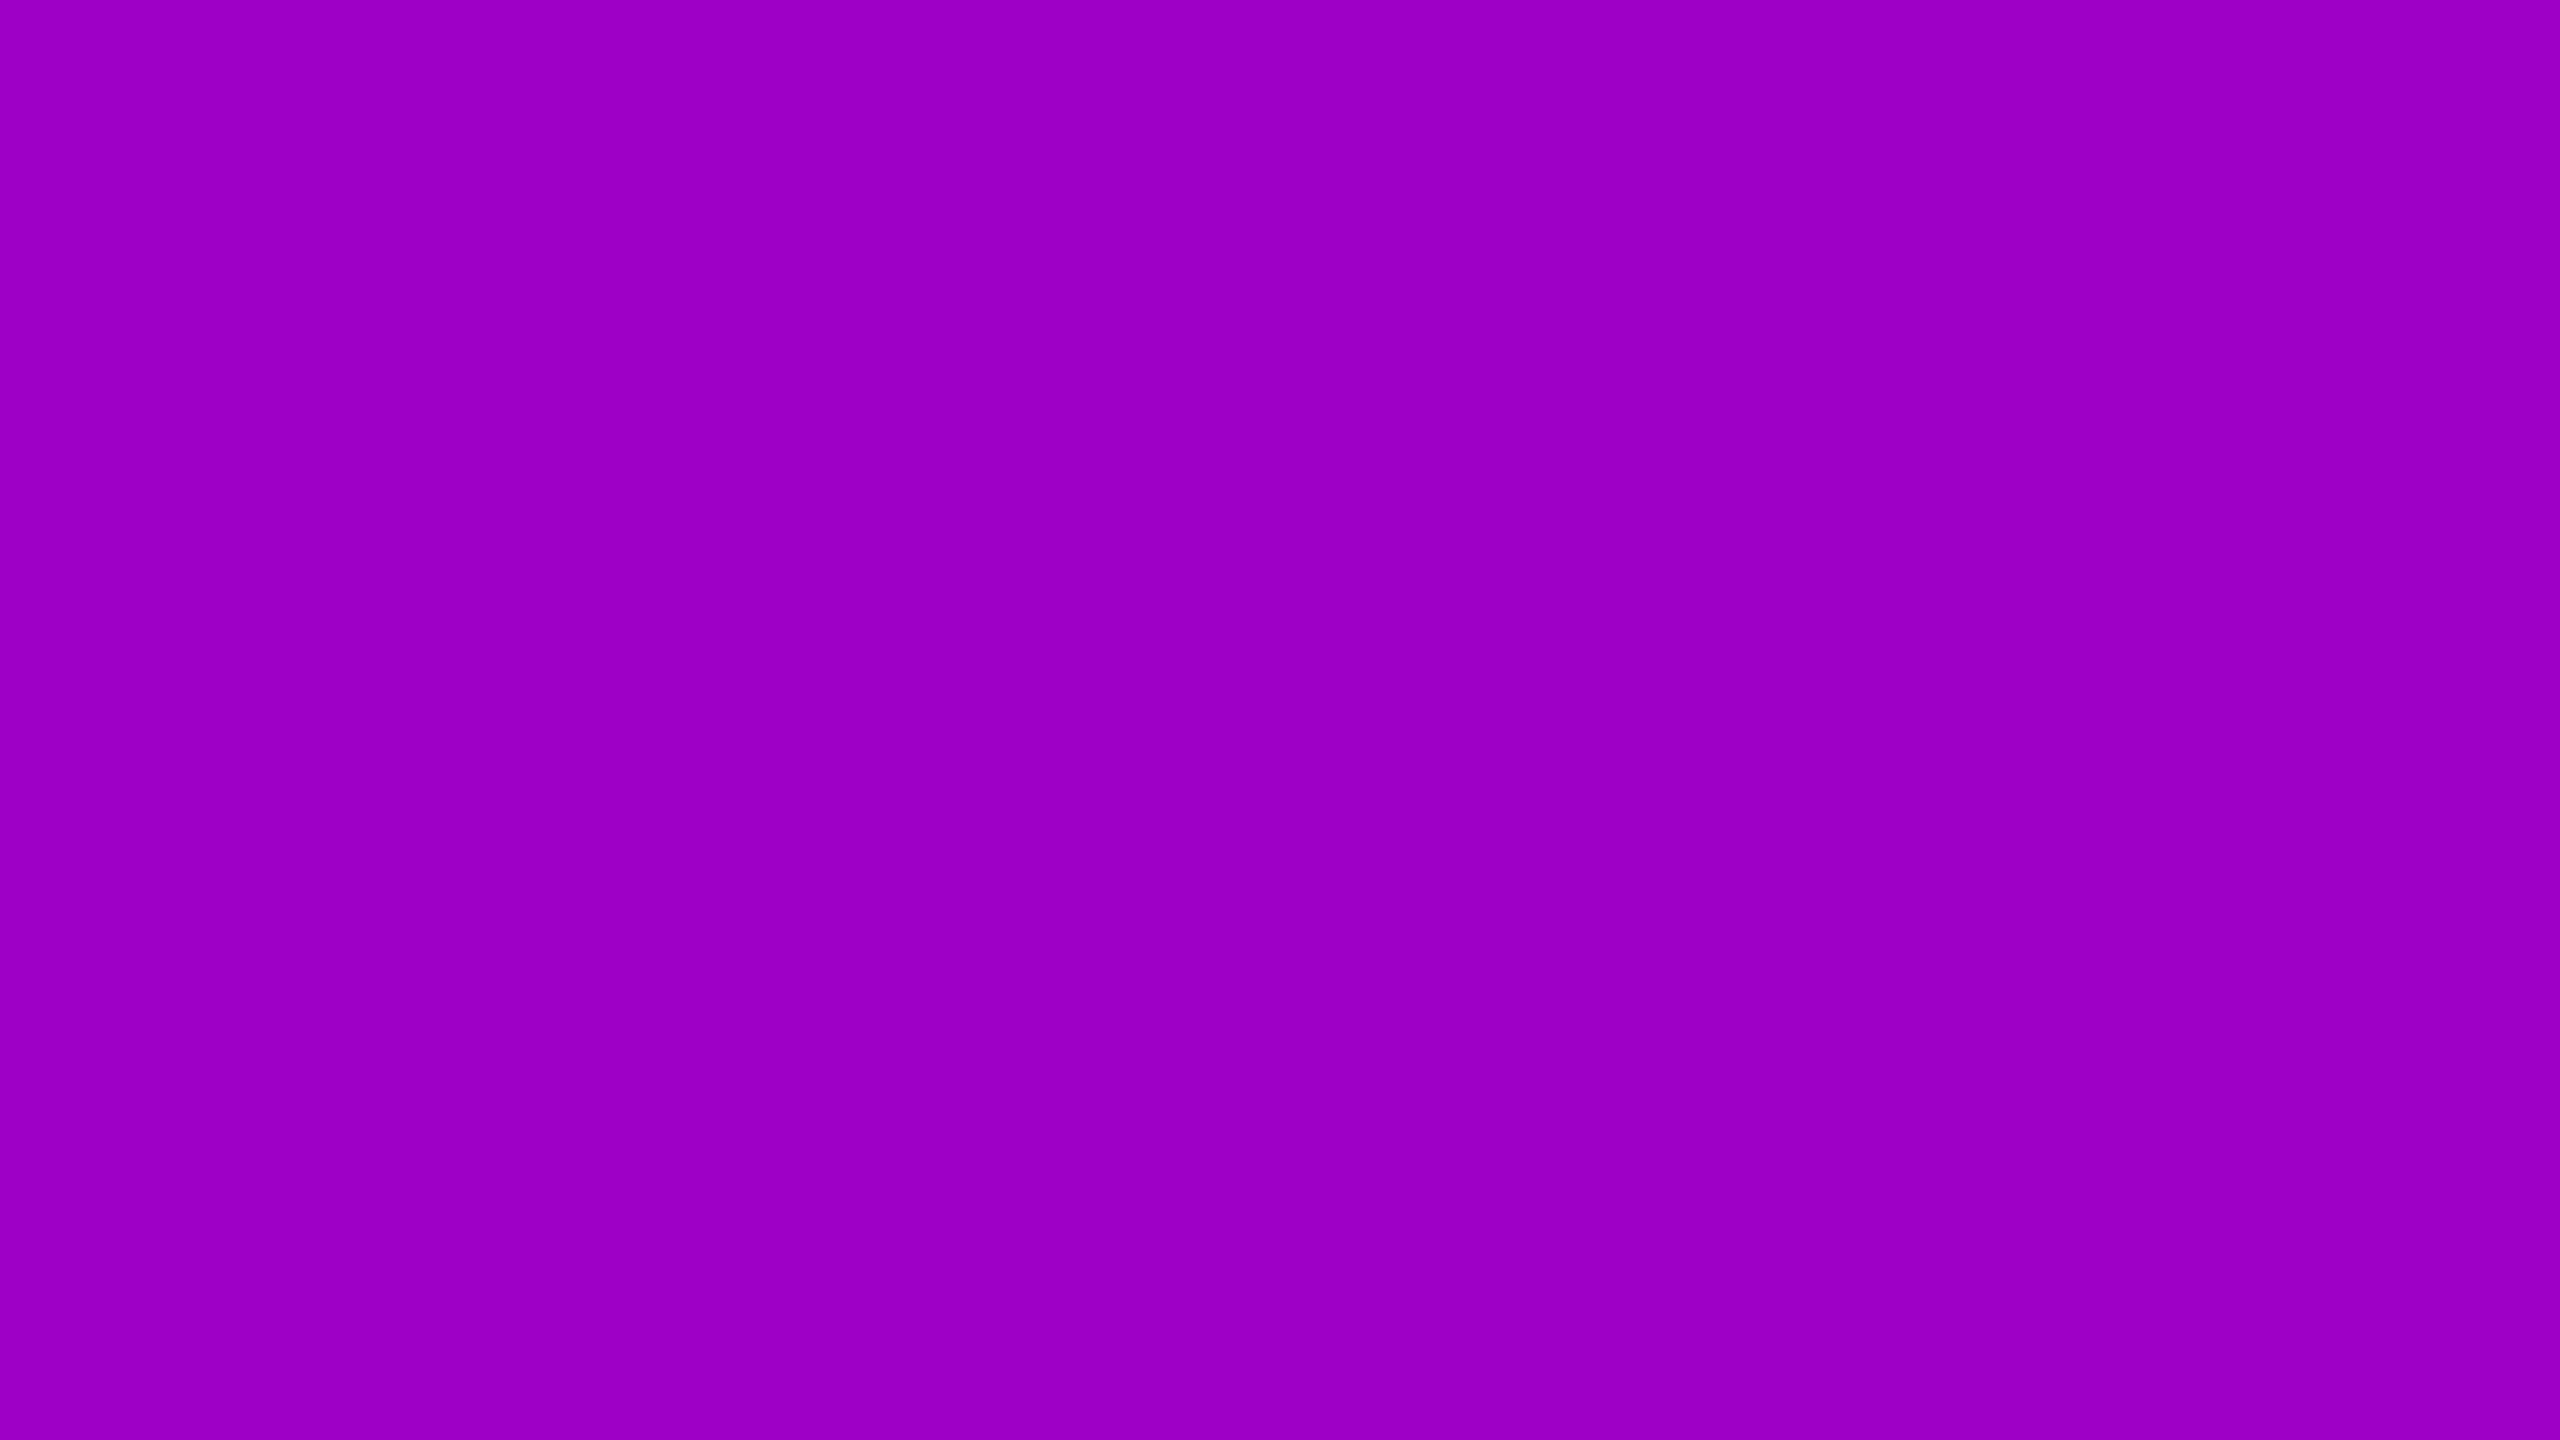 2560x1440 Purple Munsell Solid Color Background